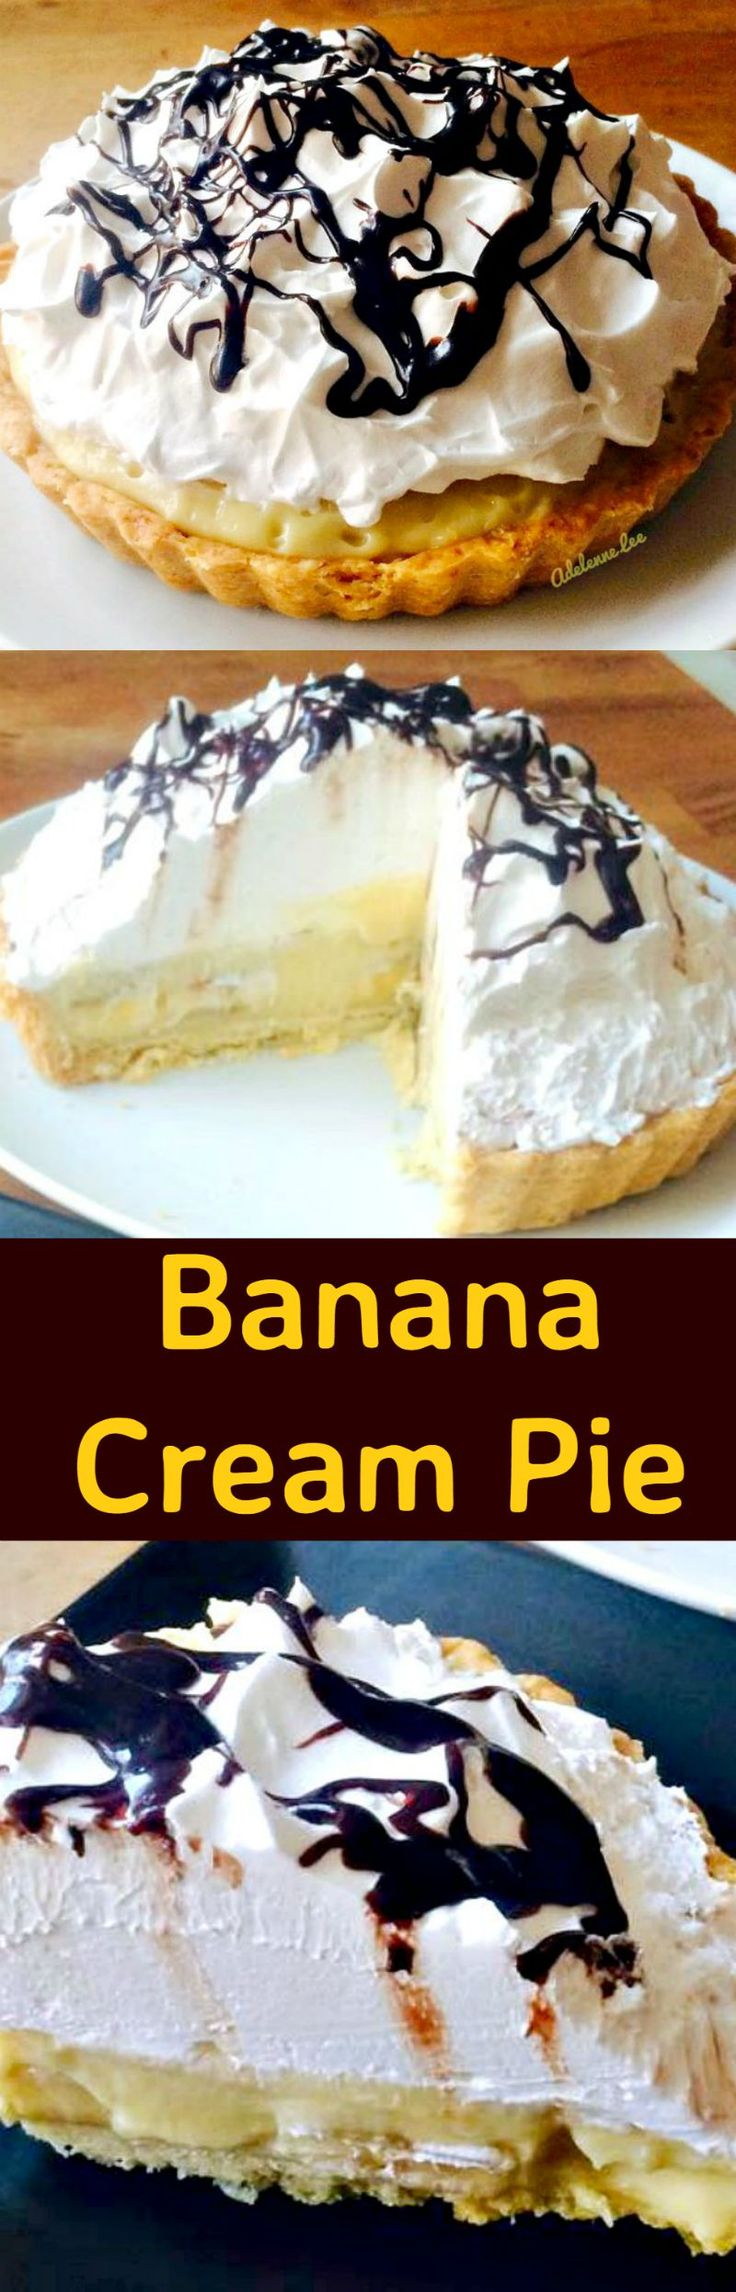 Banana Cream Pie, made from scratch, VERY easy and oh so delicious!   Lovefoodies.com